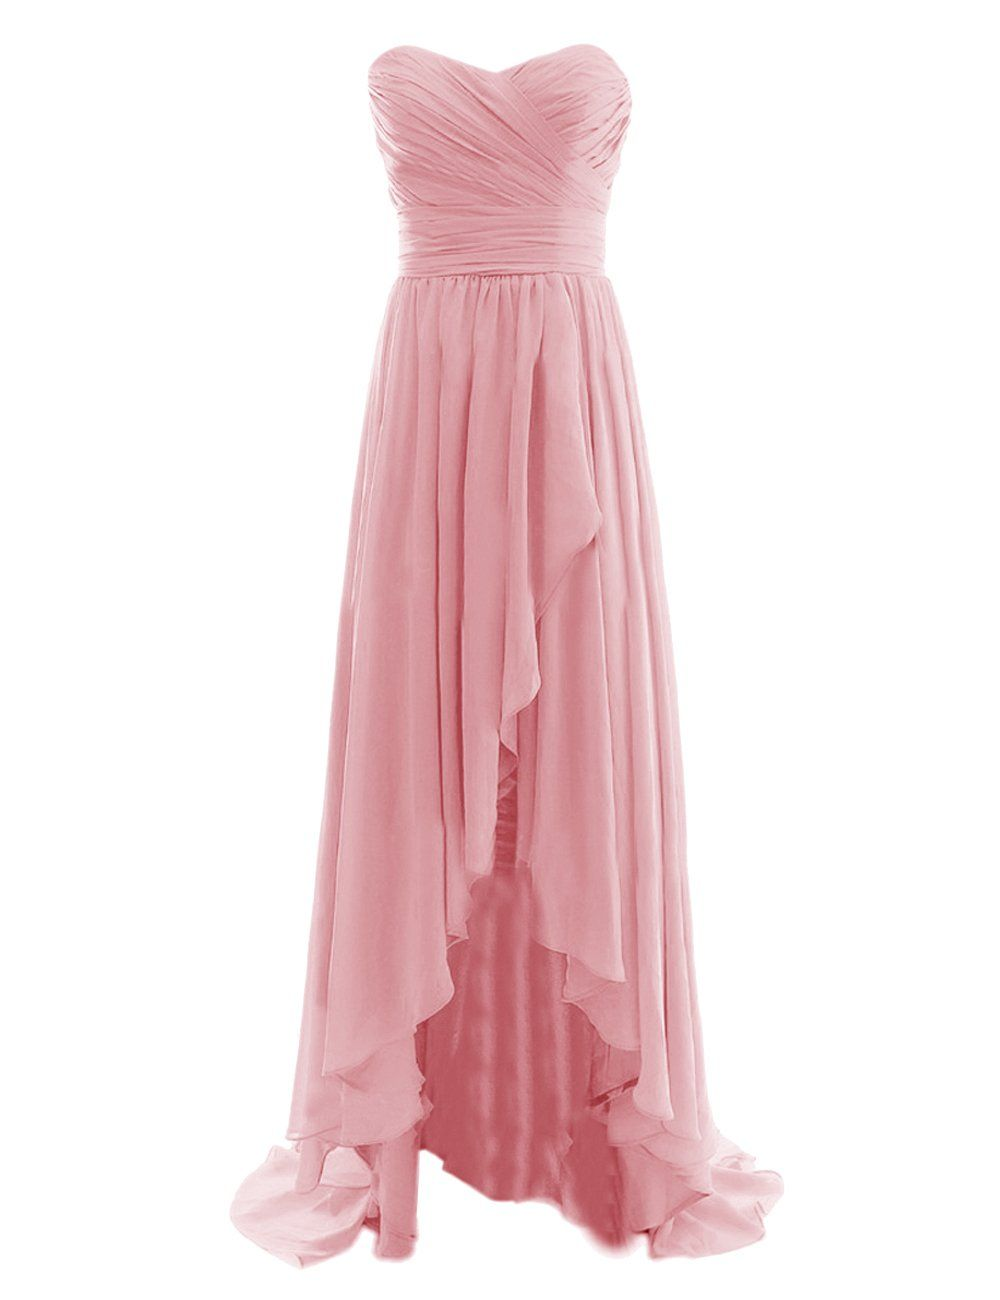 Diyouth long high low bridesmaid dresses sweetheart formal evening